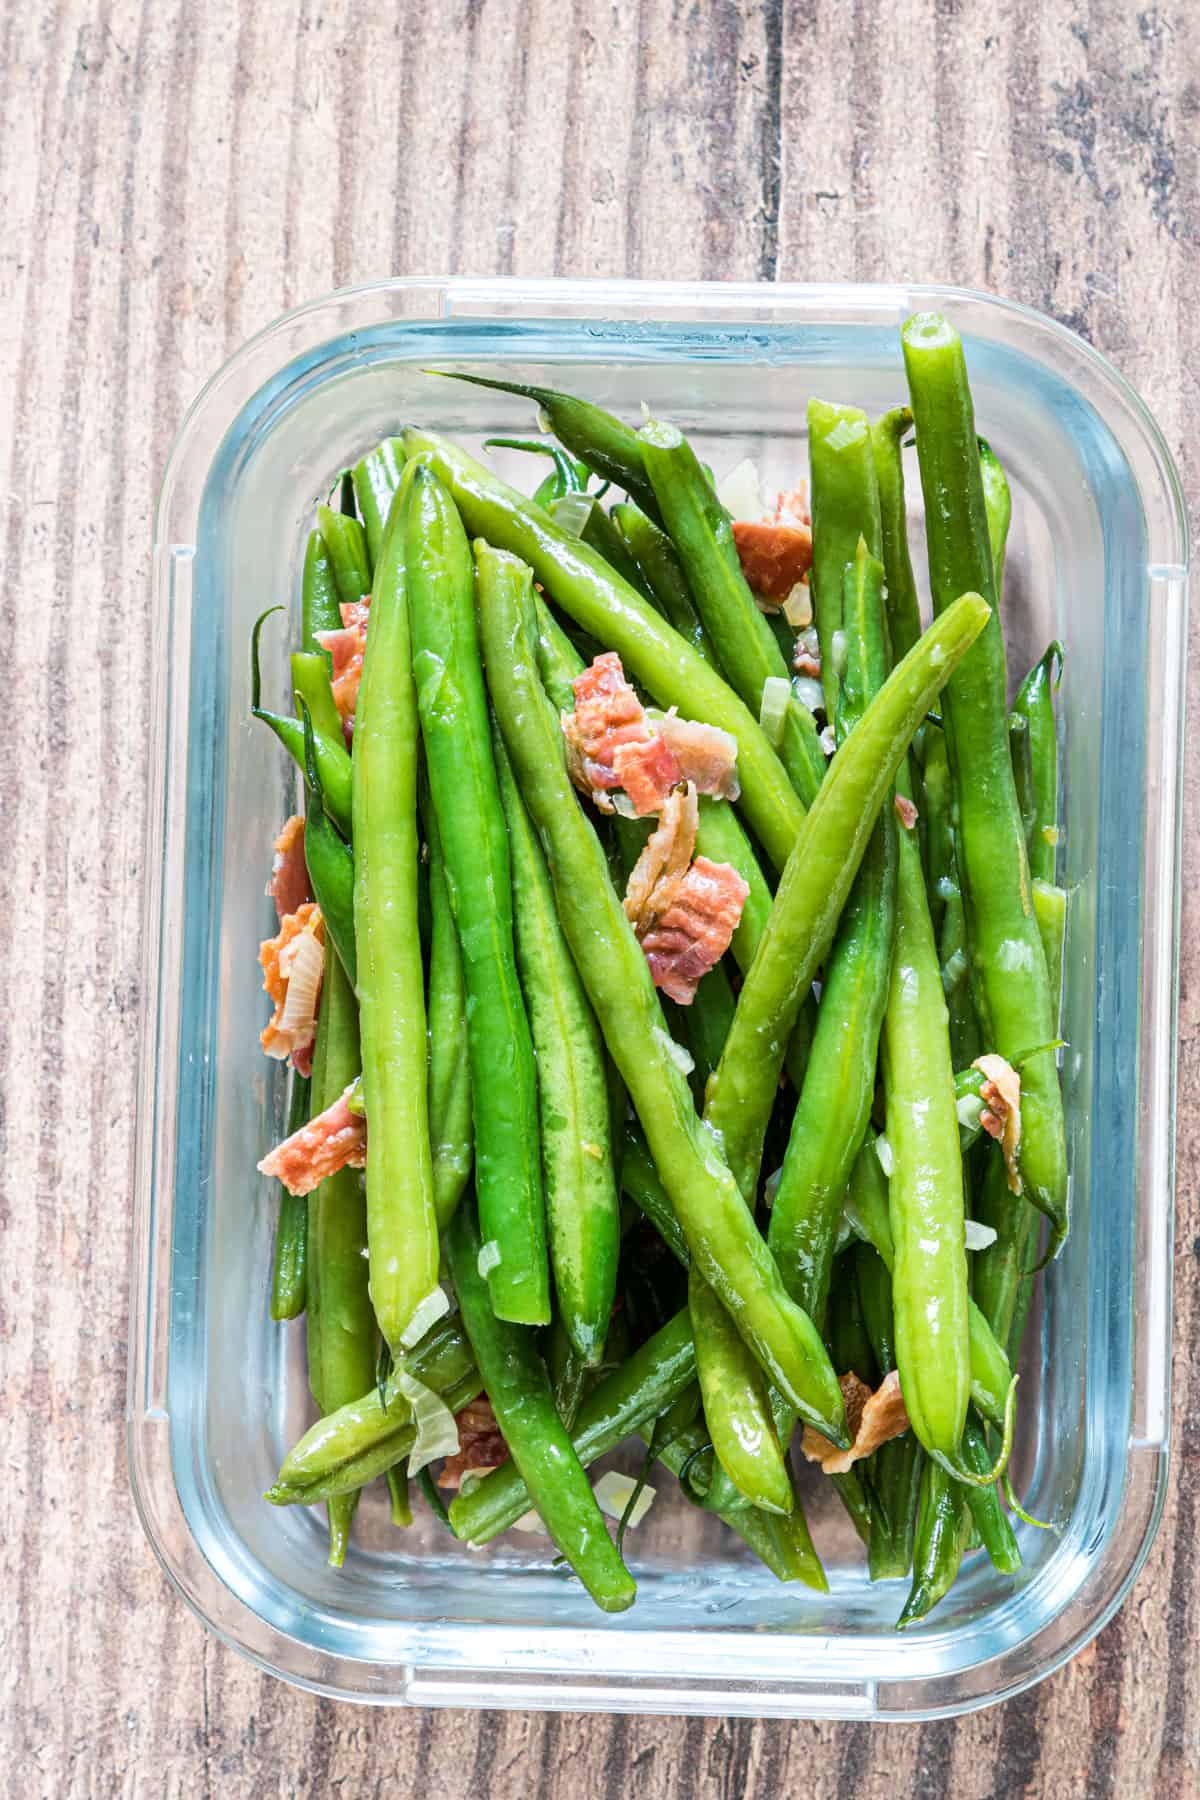 green beans with bacon inside a glass food storage container